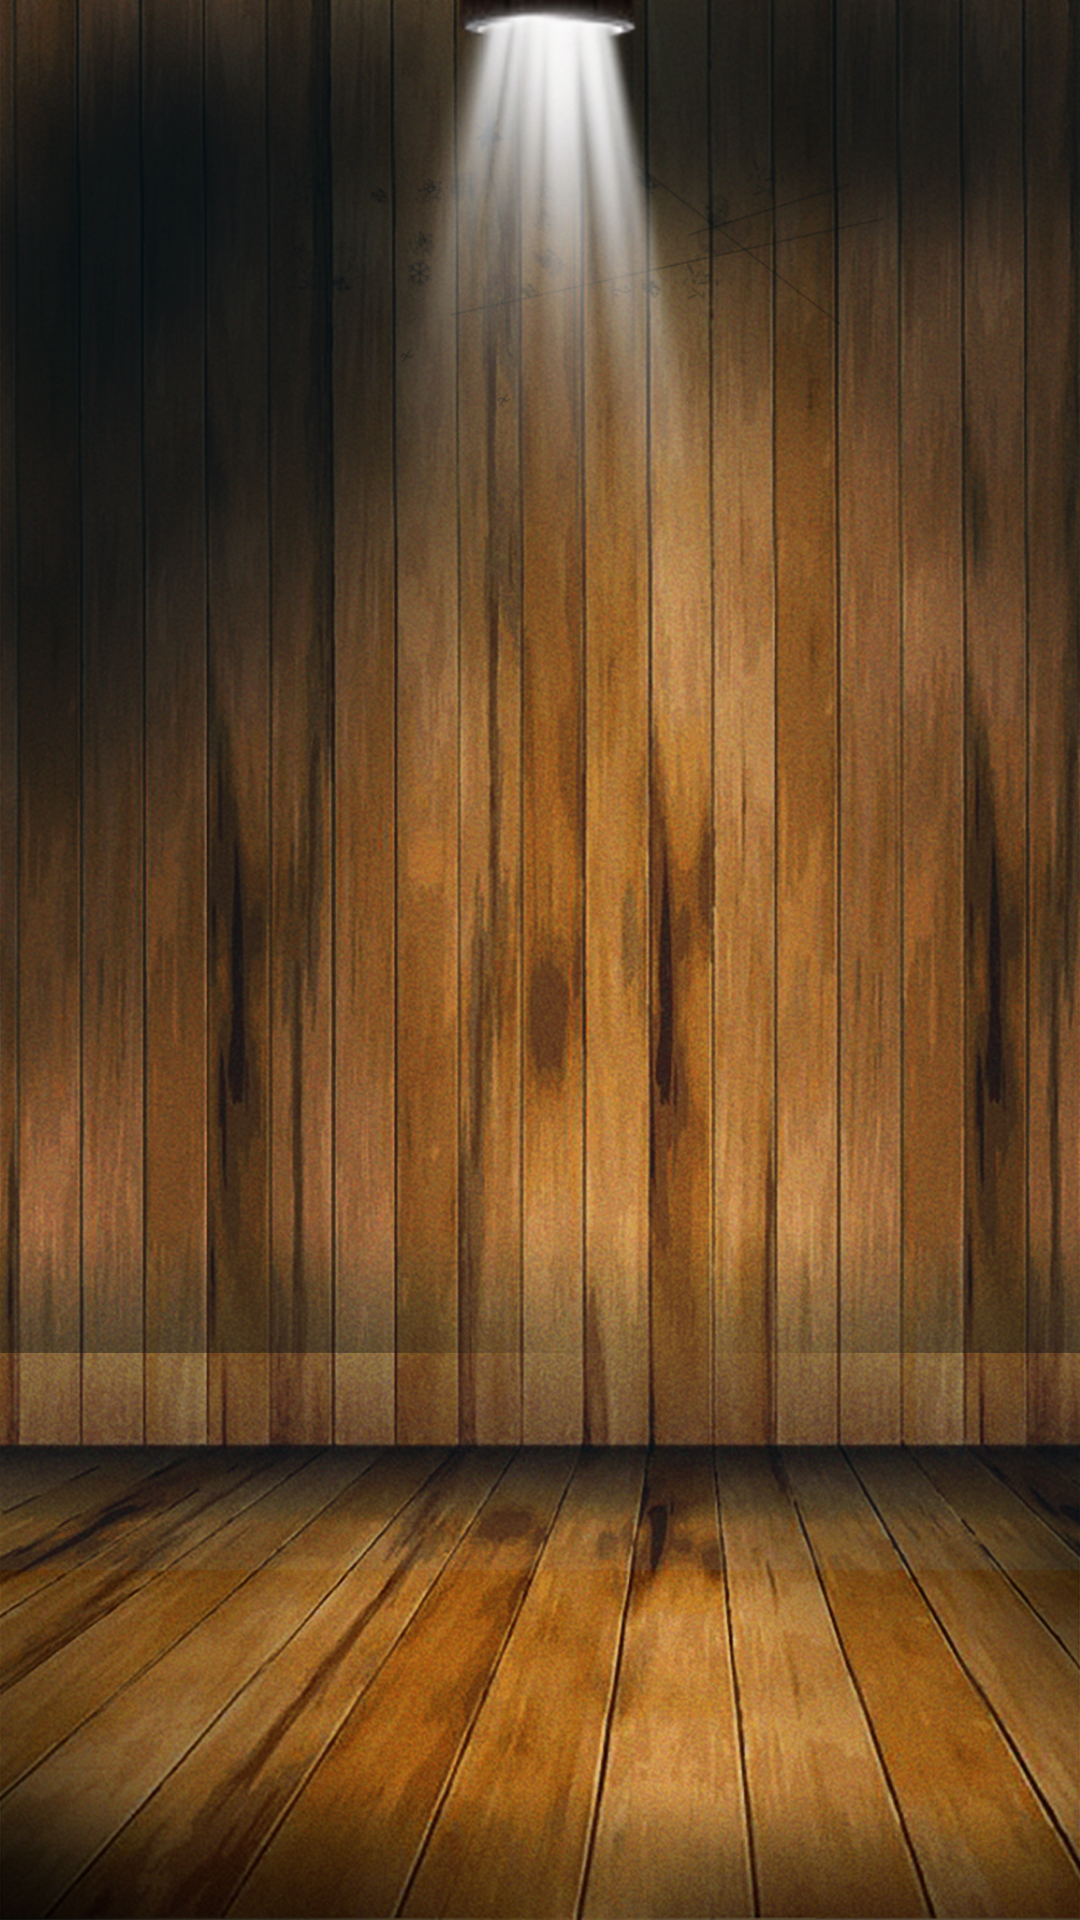 Fall Heart Leaves Background Wallpaper Light Brown Wooden Texture Background Psd Layered Material